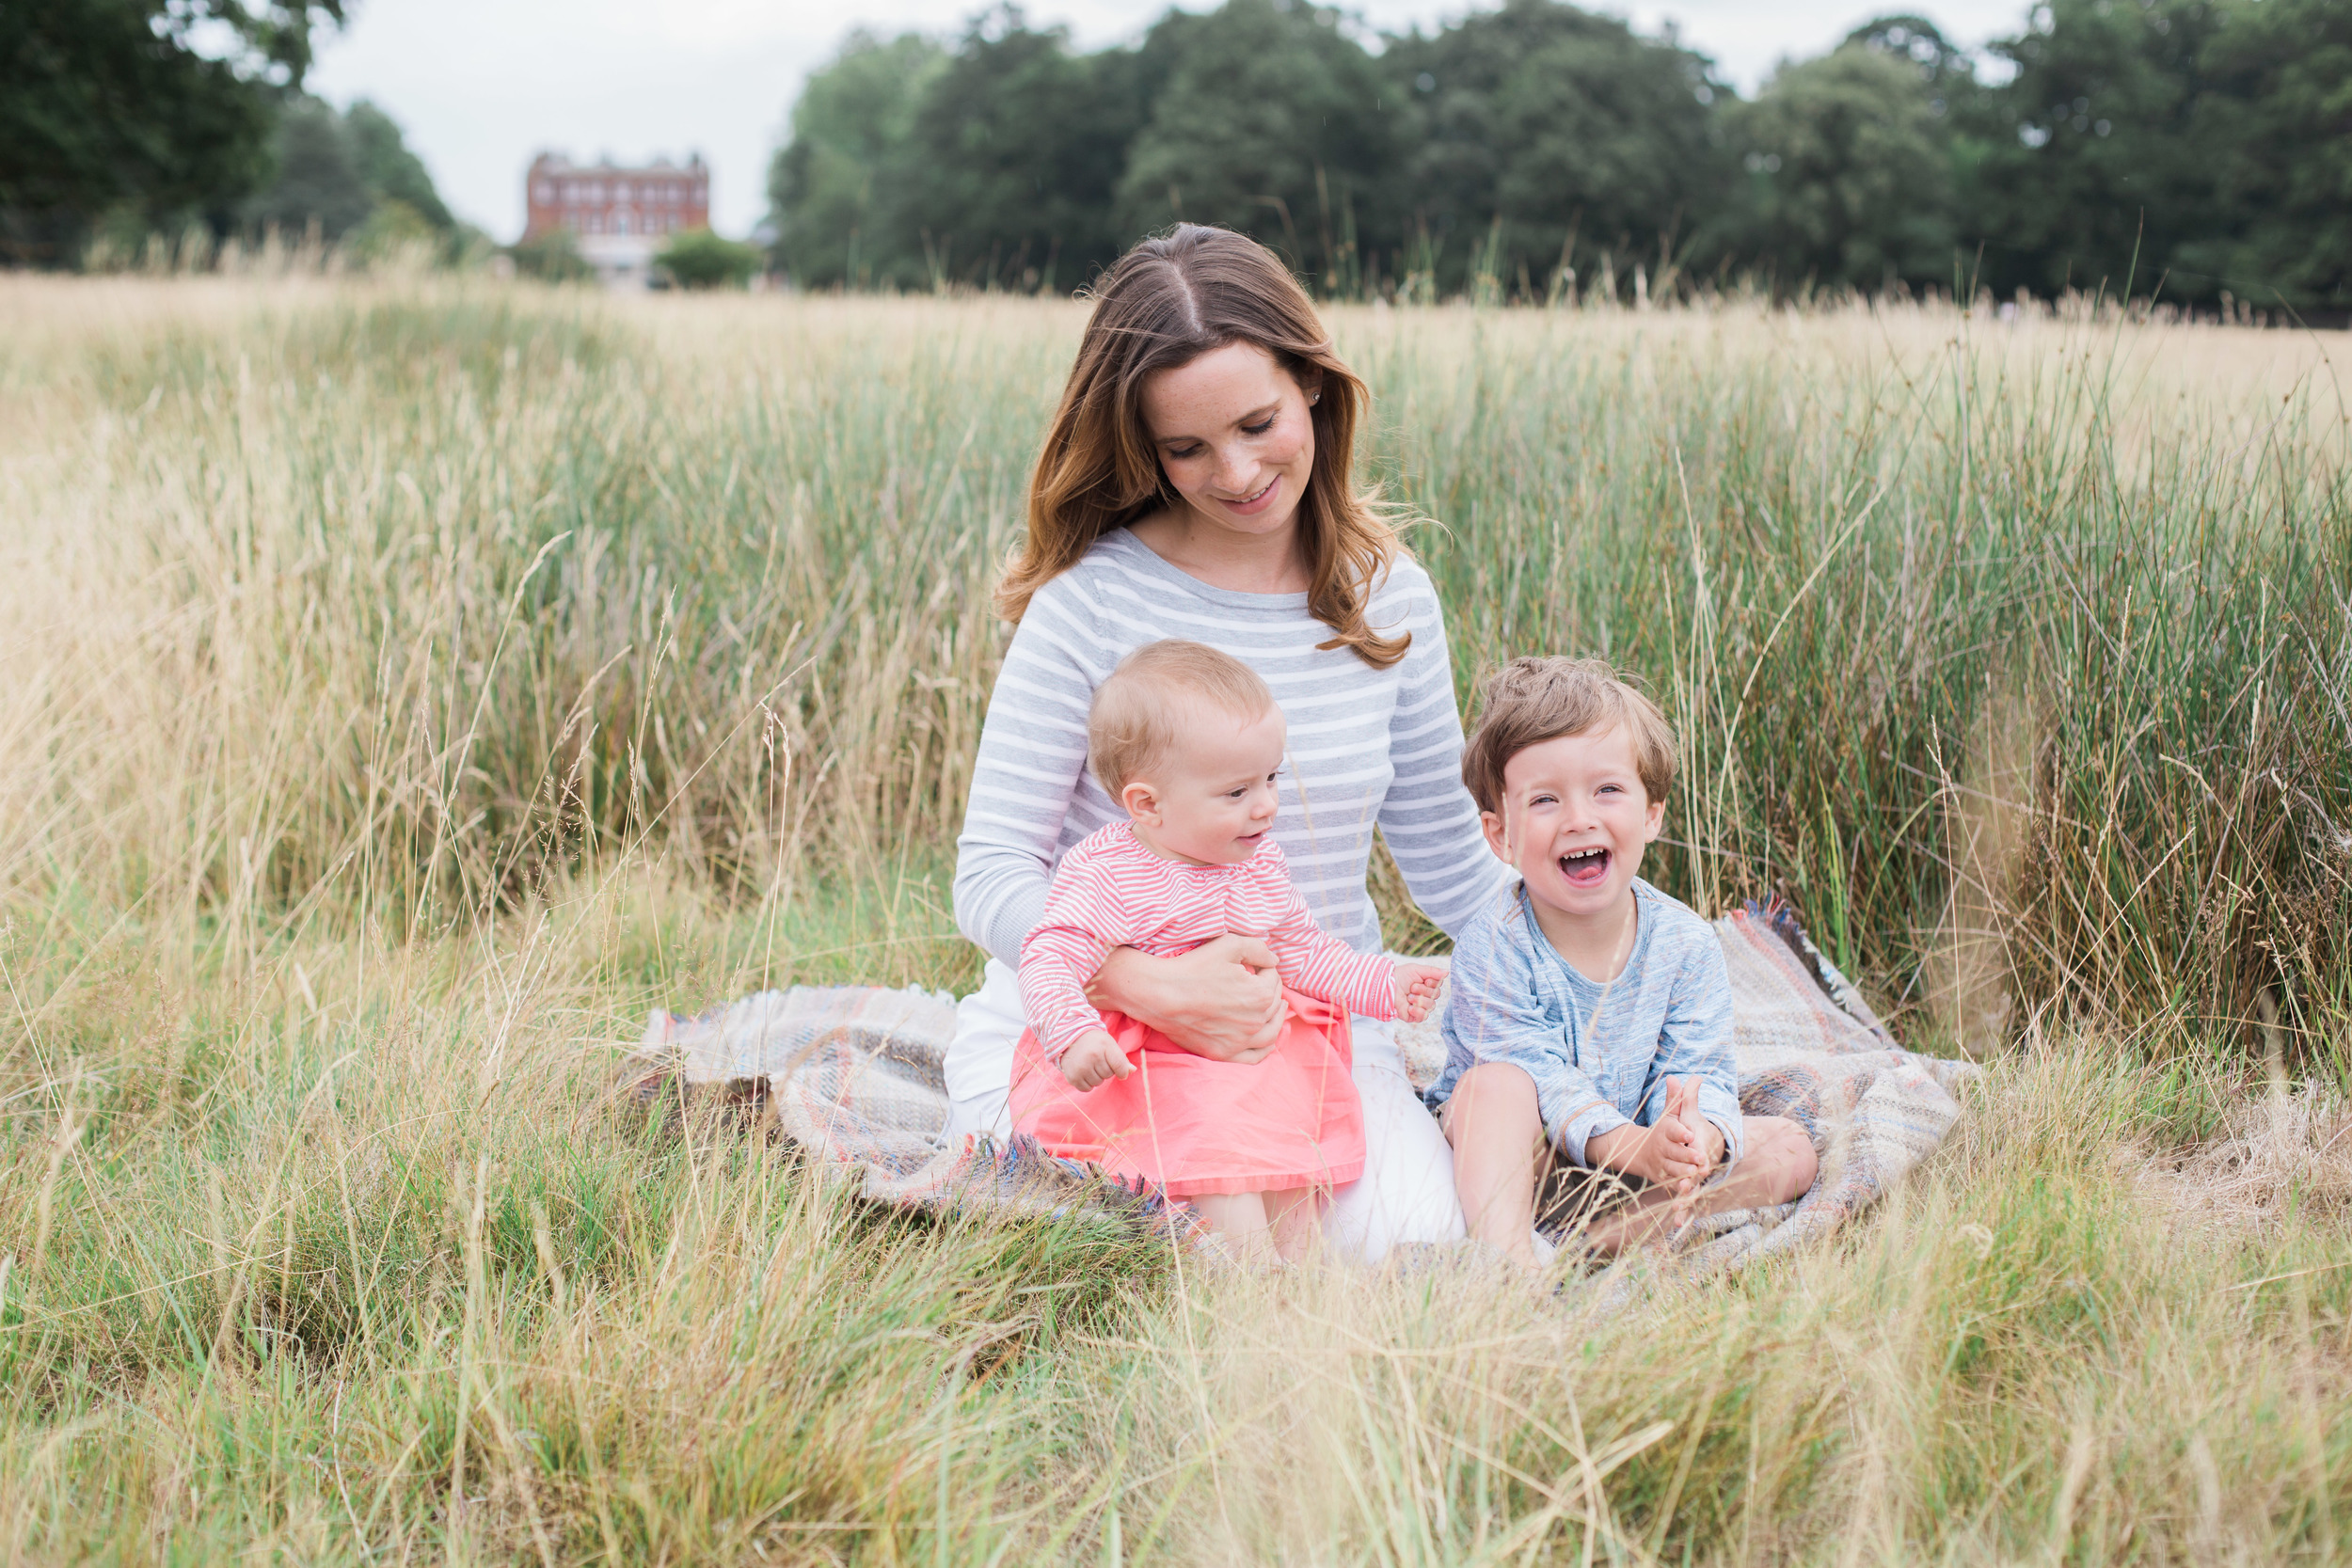 teddington_family_photographer_littlekinphotography01